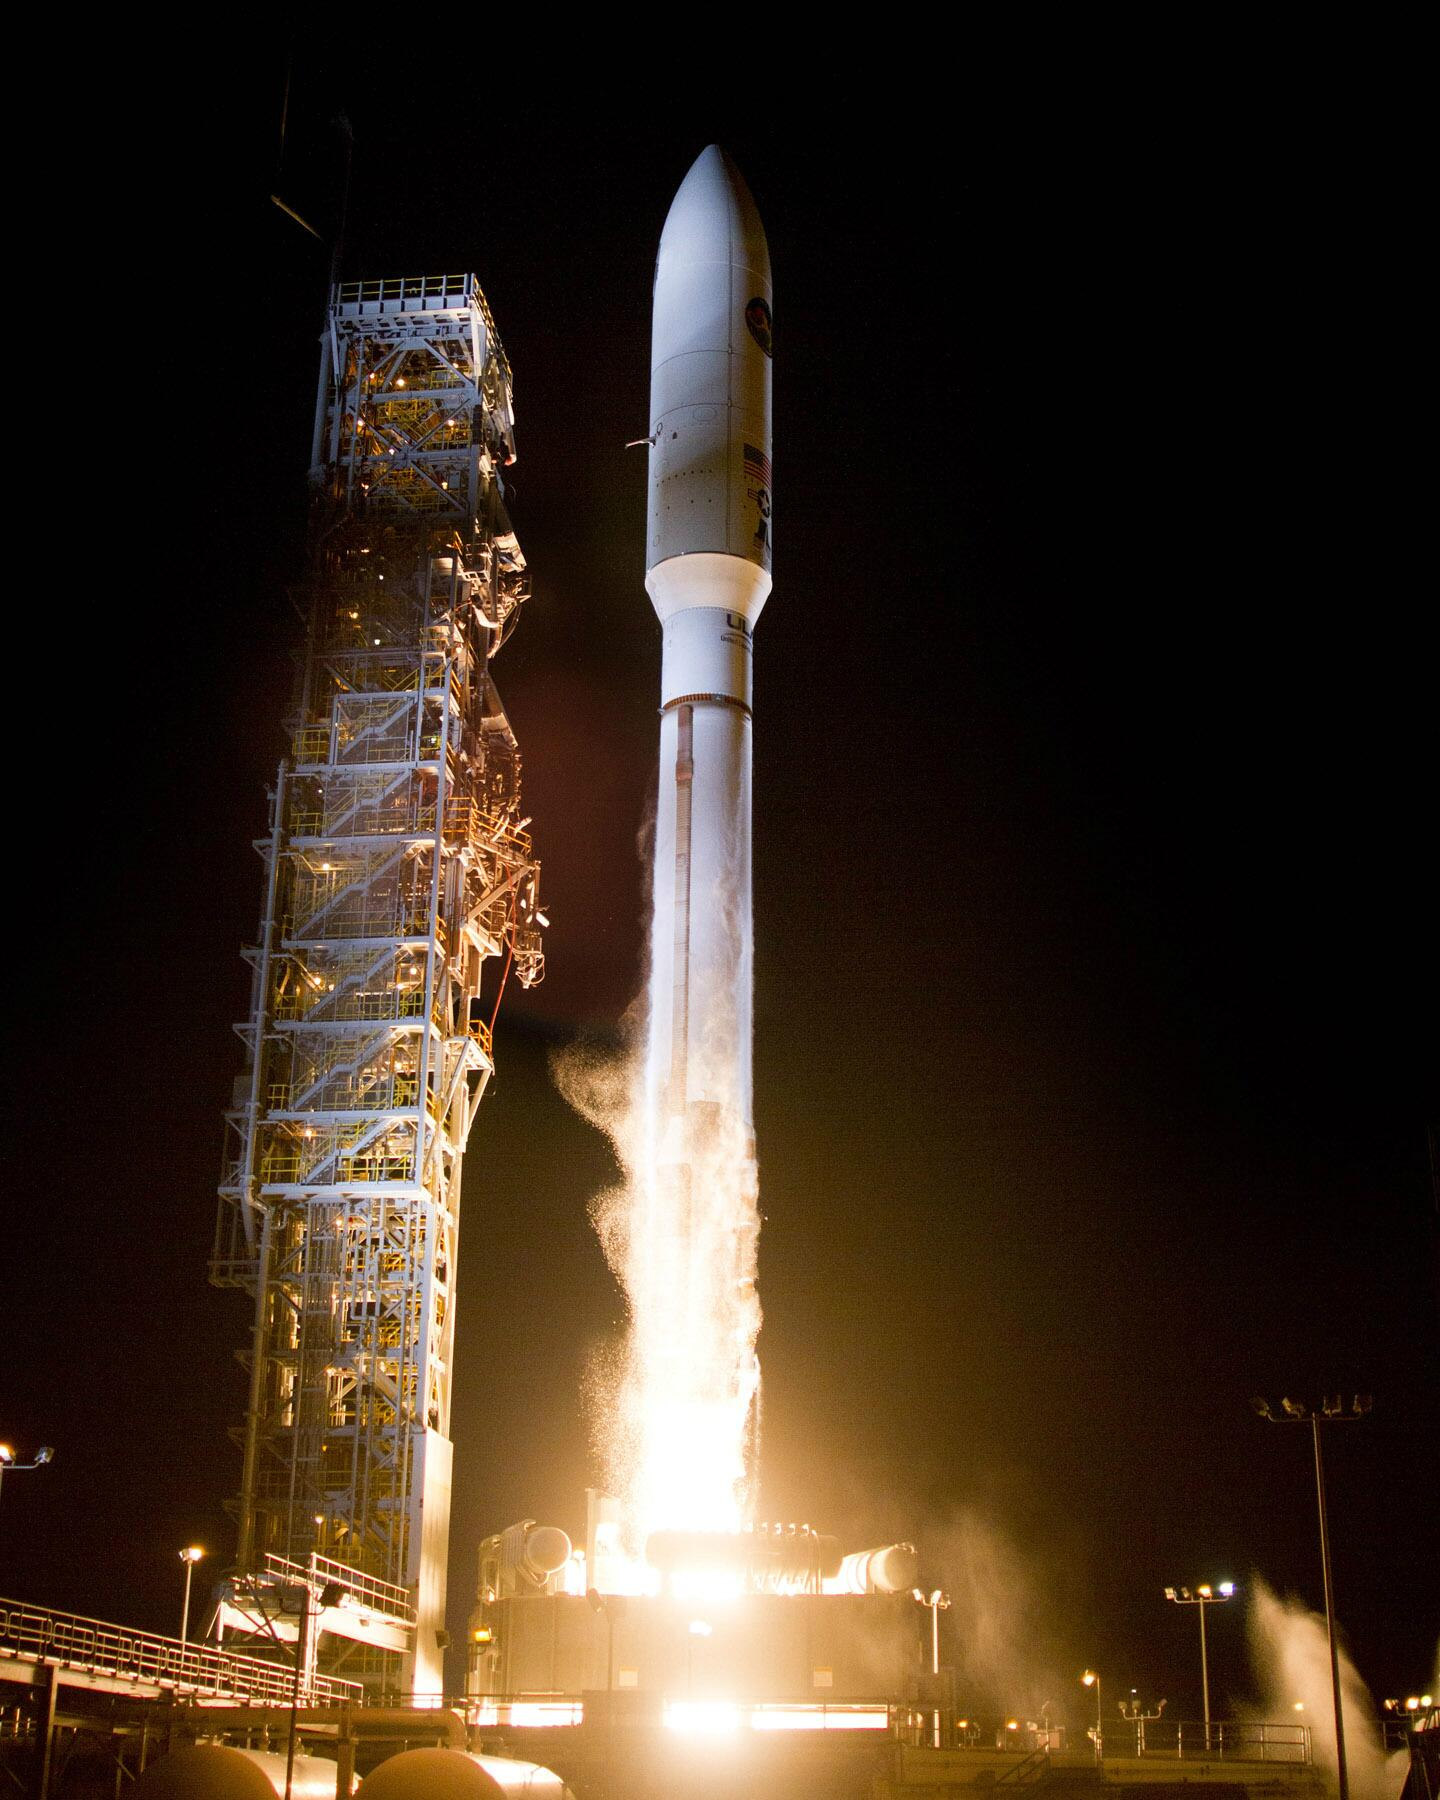 Congrats to @ulalaunch for the 11:14 p.m. PST successful flight of the #AtlasV from VAFB for NRO and our cubesats http://t.co/ZrVWJkUp8p